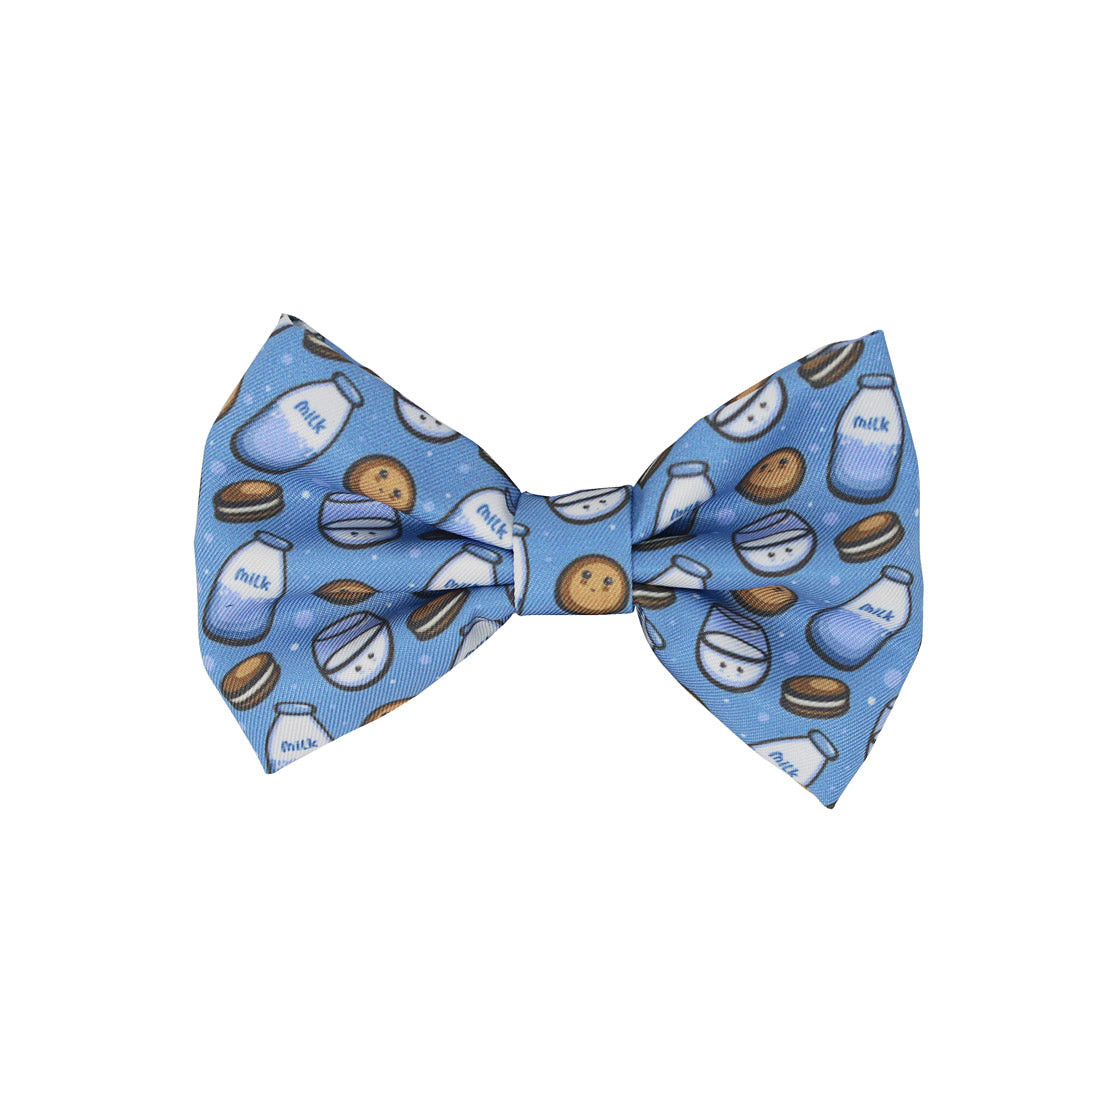 Dog Bow Tie - Milky Way - Blue Paw Co.